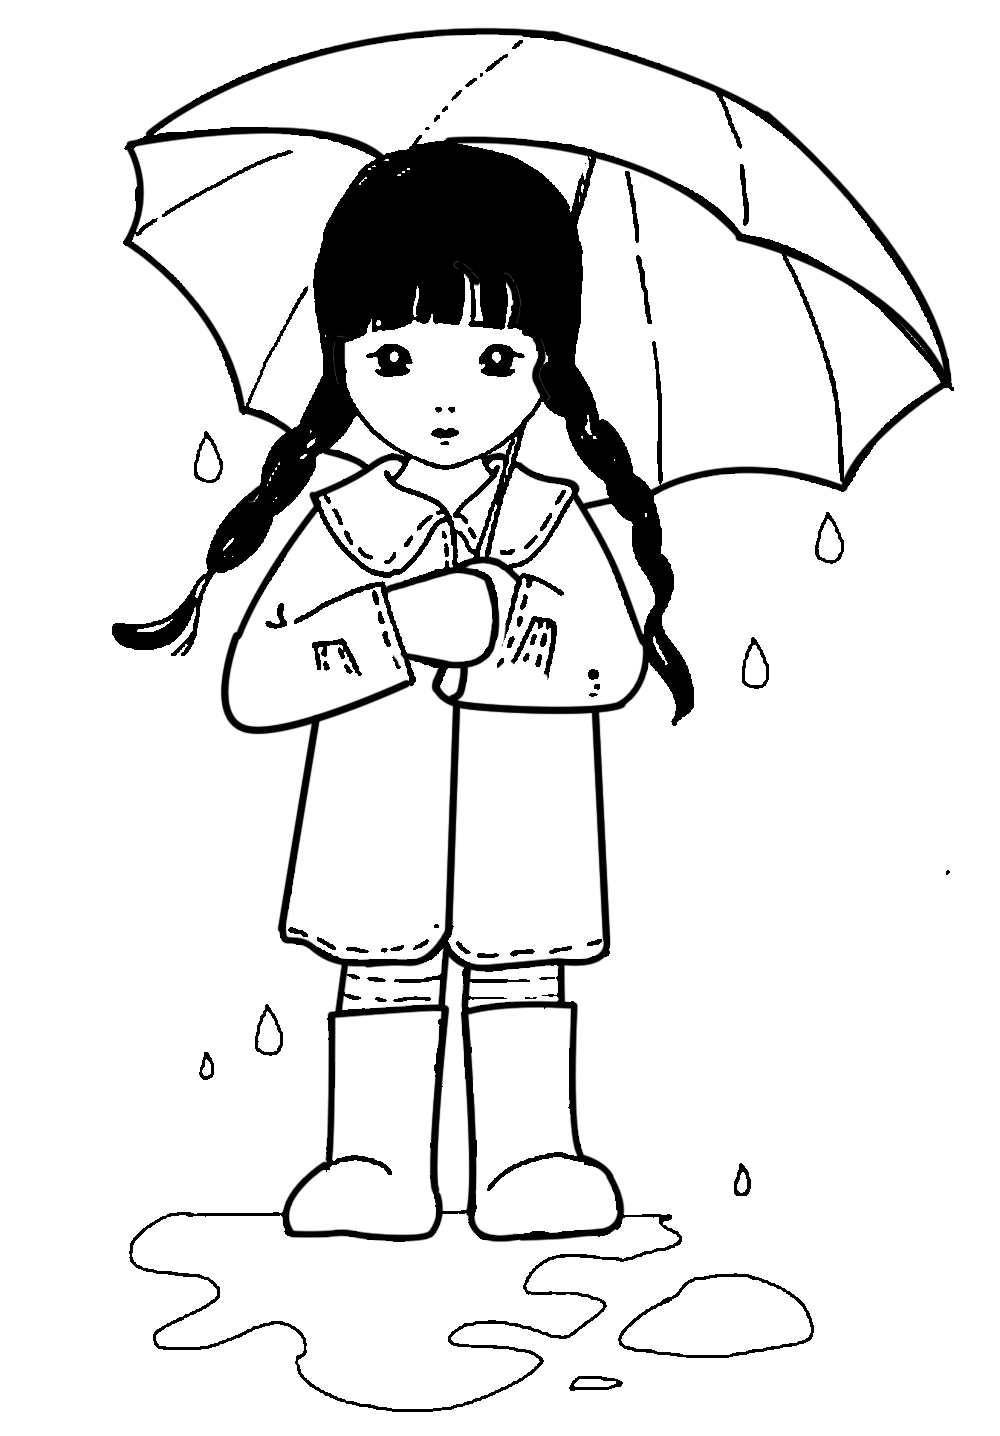 Boy with umbrella clipart black and white clip library stock Free Umbrella Images, Download Free Clip Art, Free Clip Art on ... clip library stock